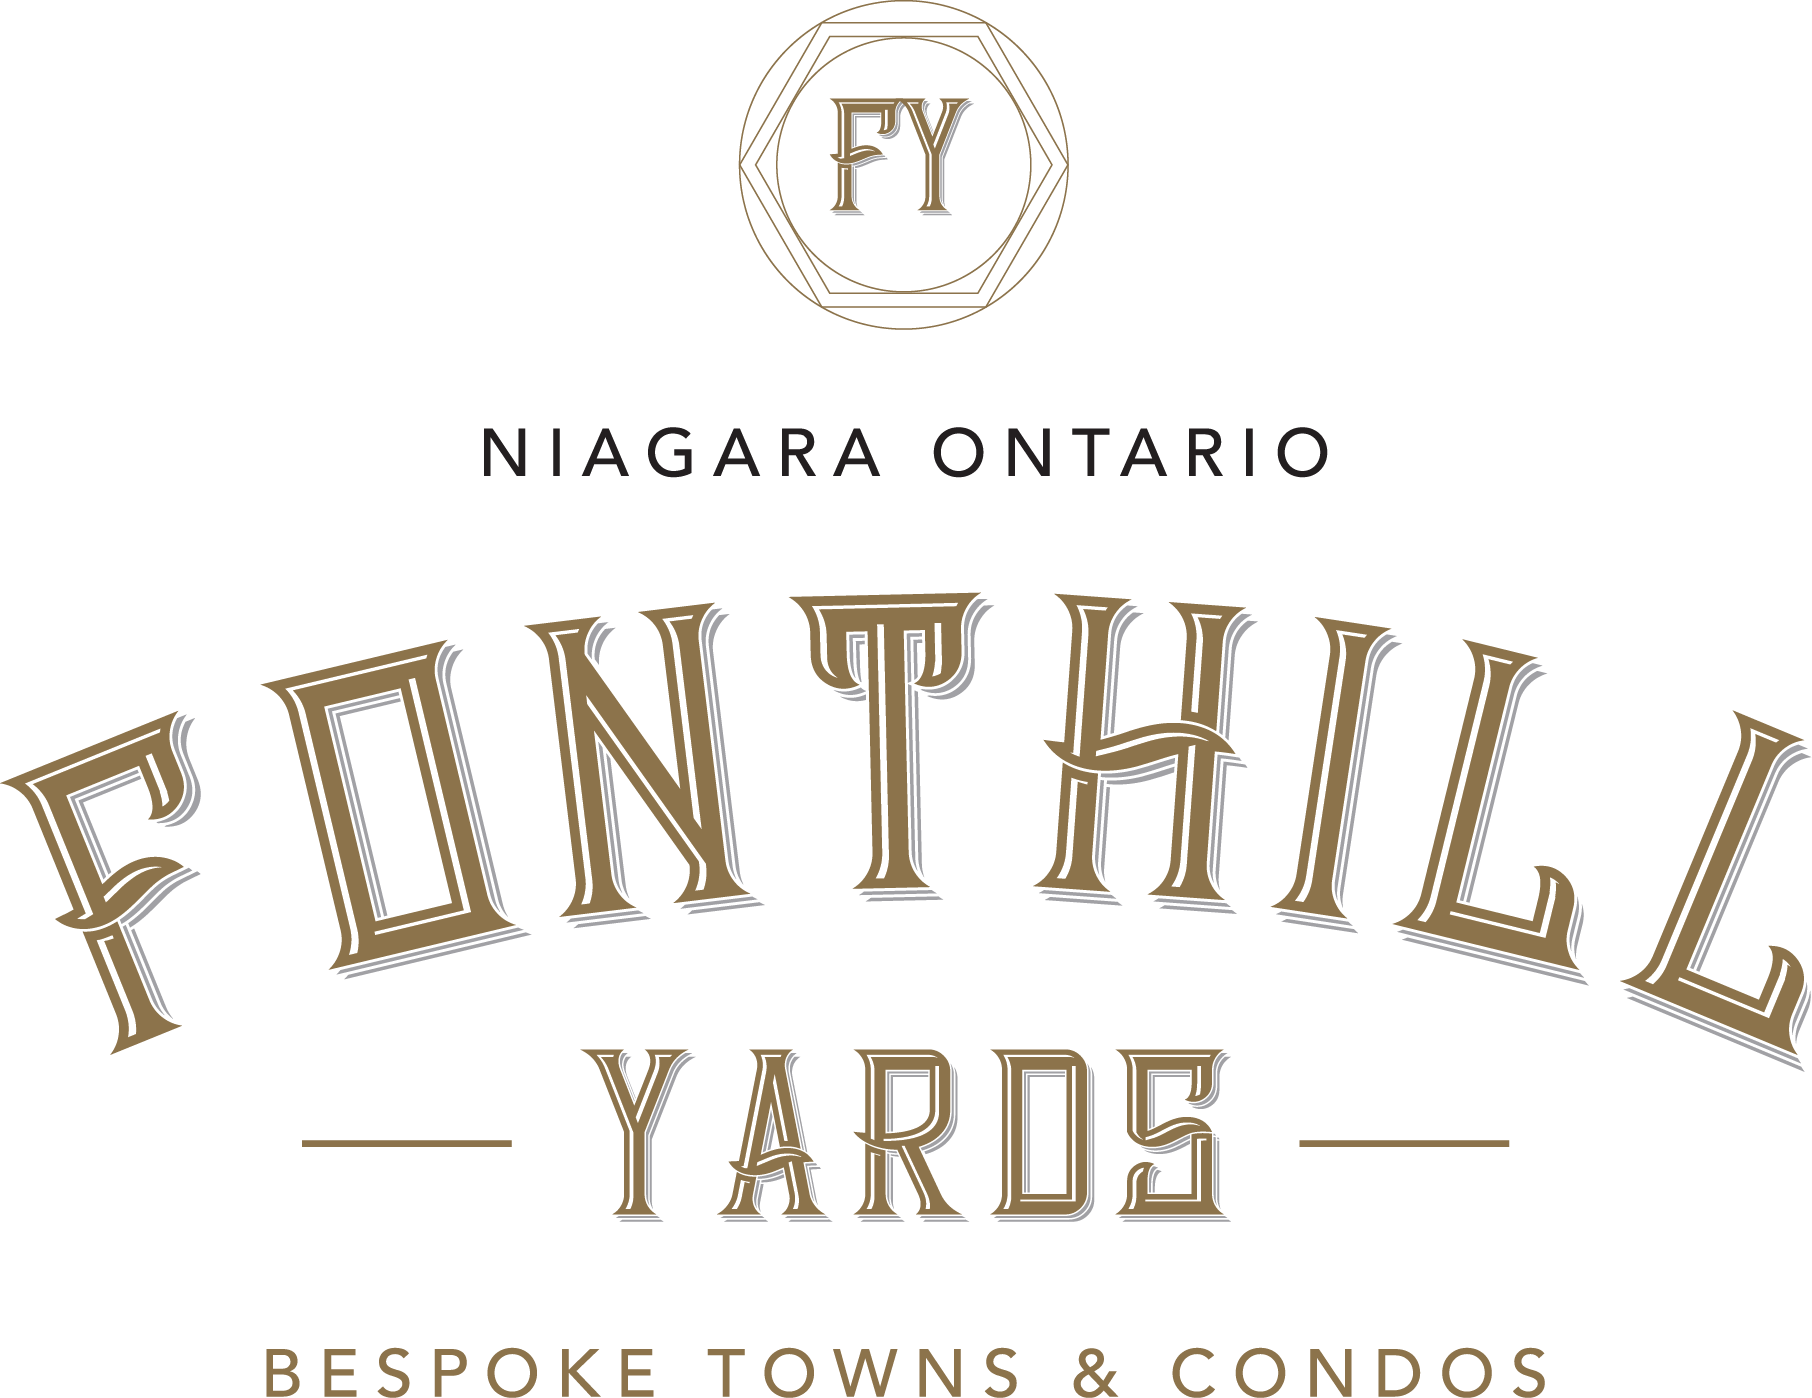 Aiva_Fonthill_Yards_Logo.png